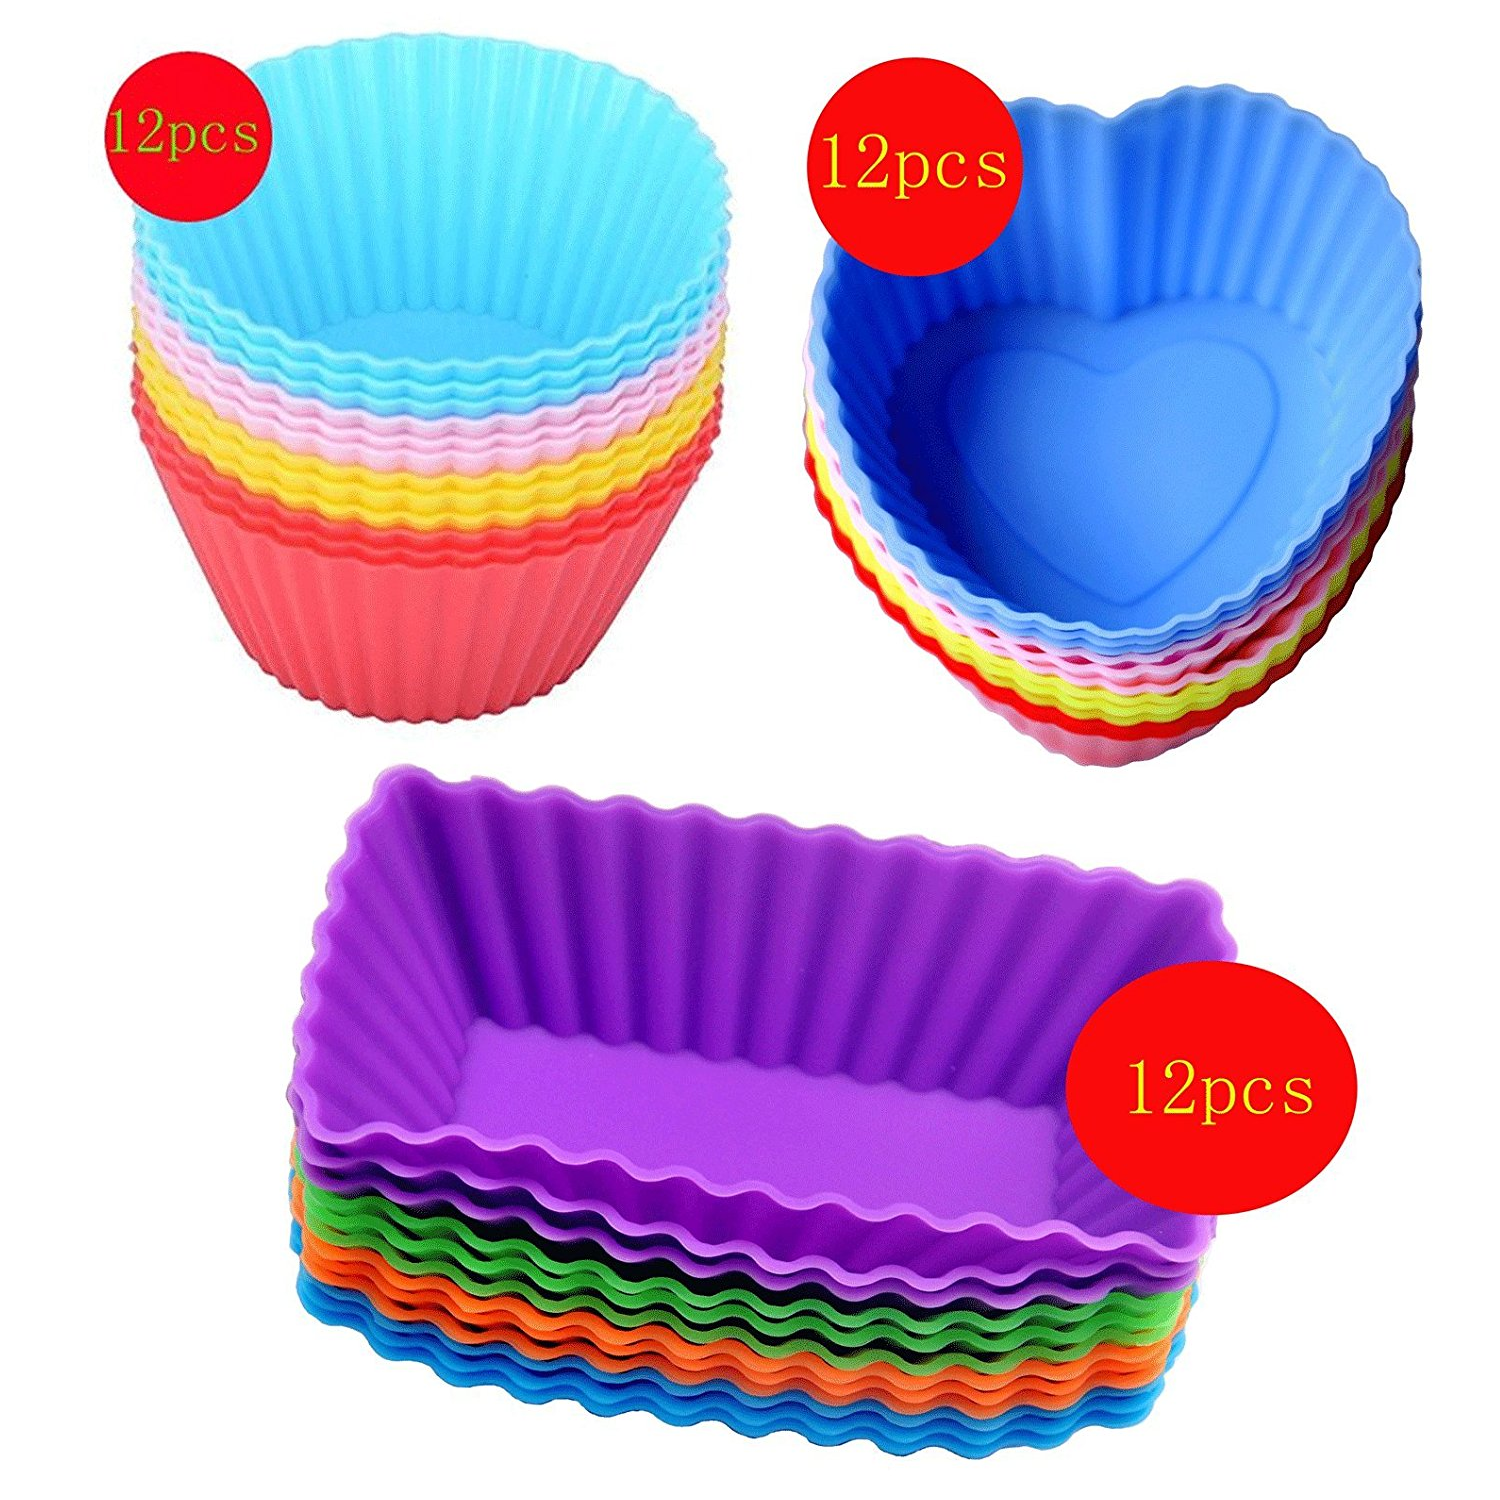 freebies2deals-cupcakesilicone